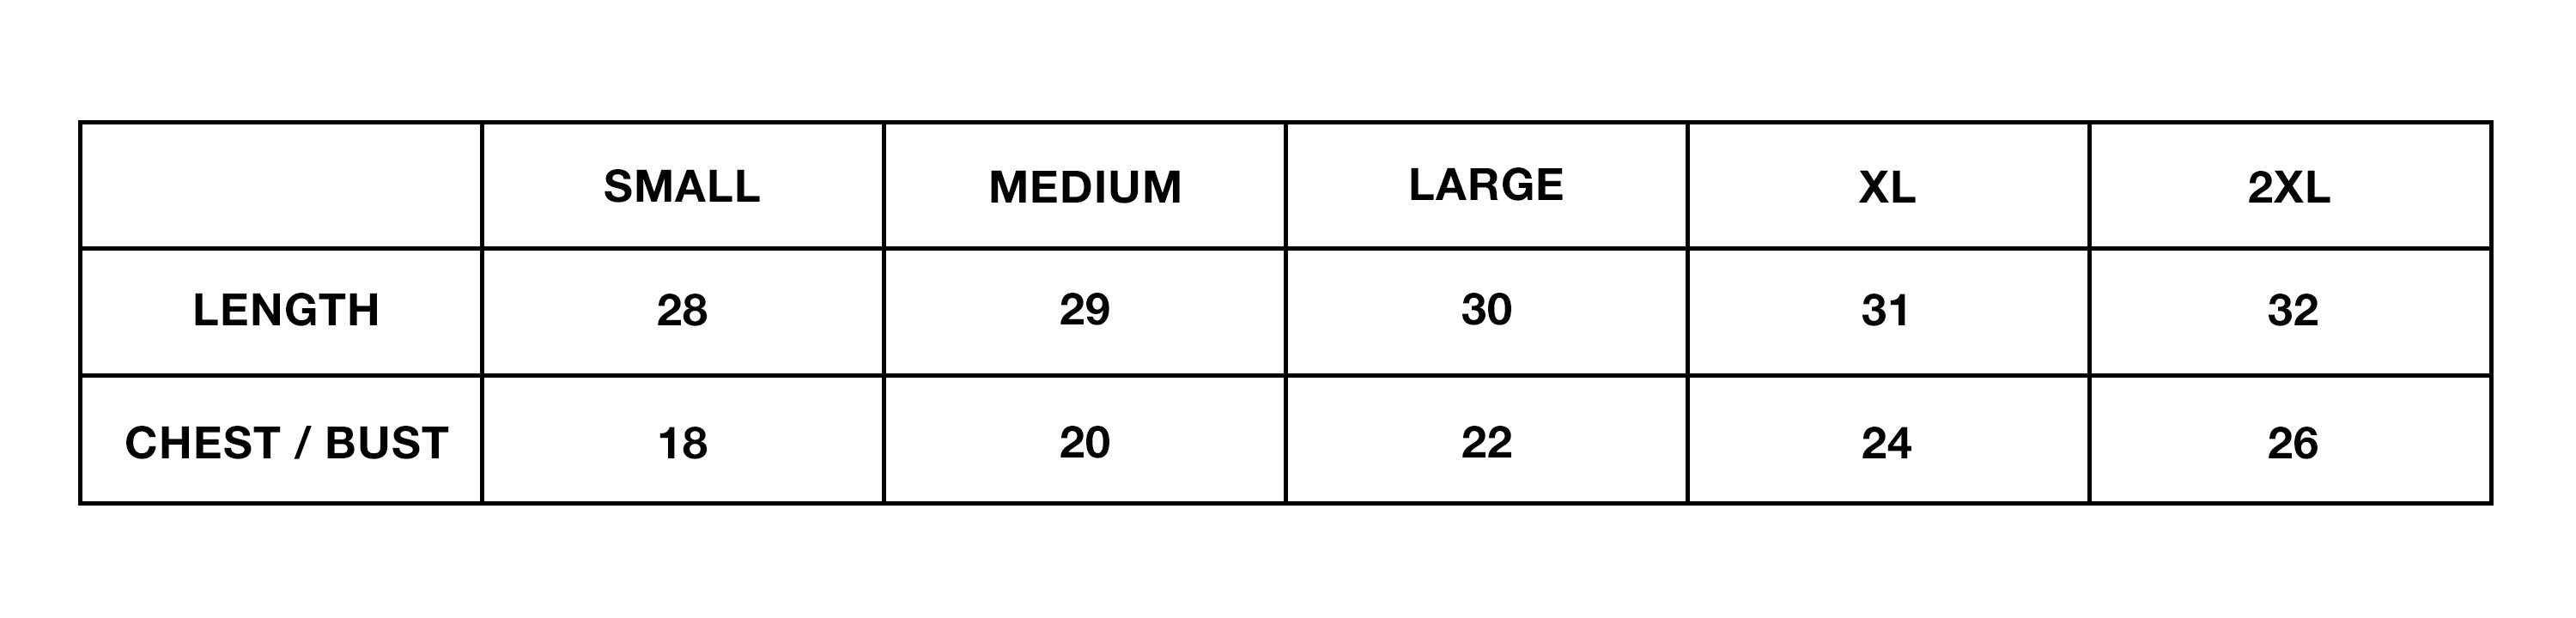 Size Chart For T-Shirts